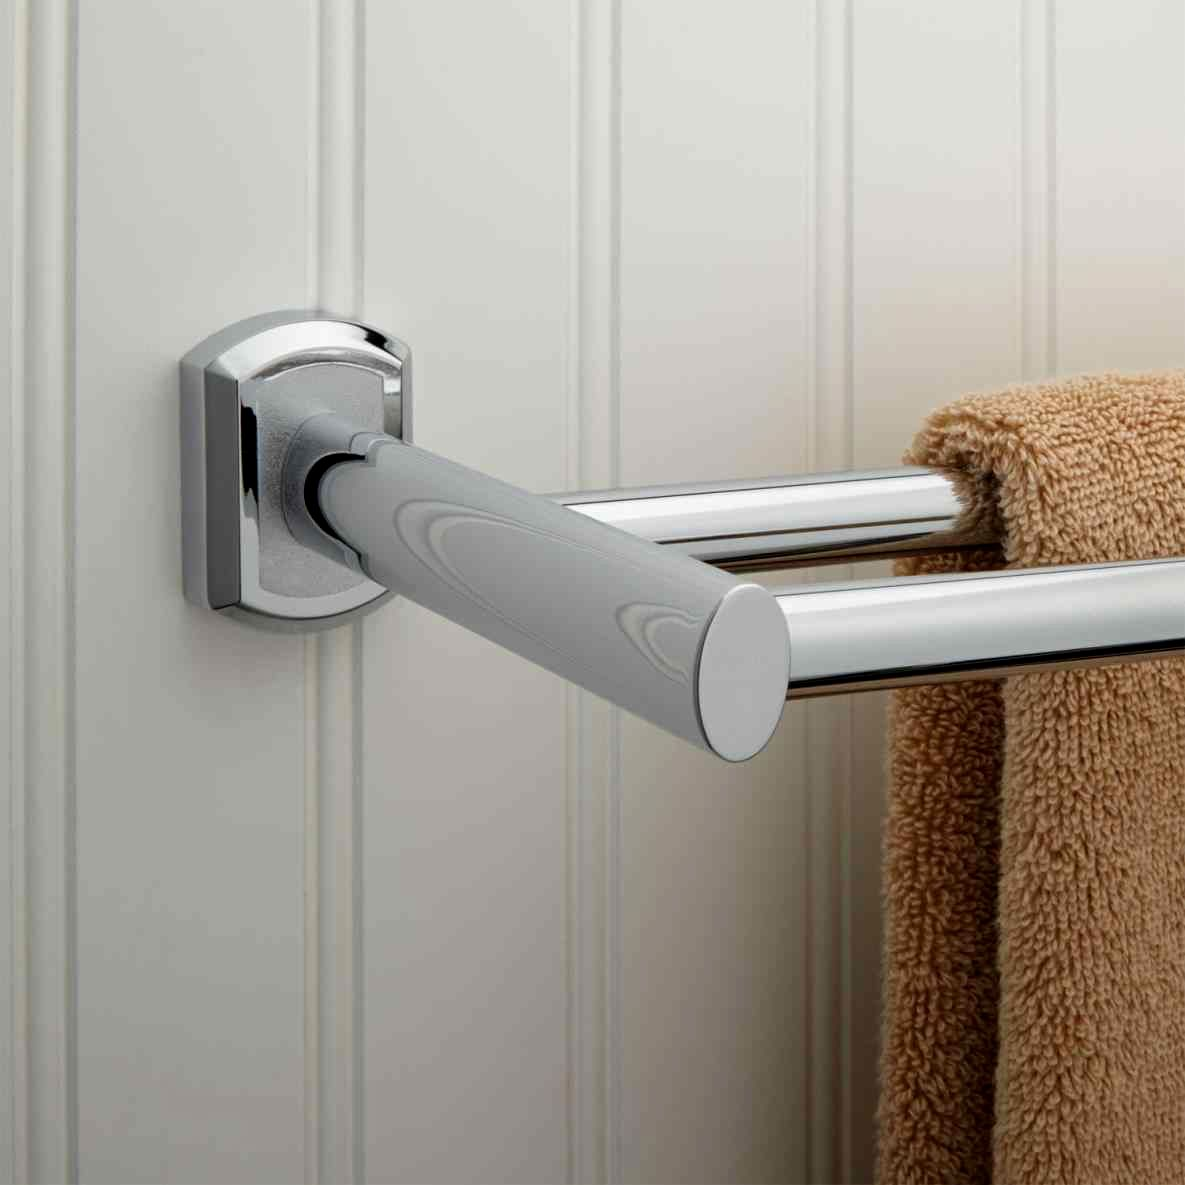 New Bathroom Stall Hardware Online - Home Sweet Home ...